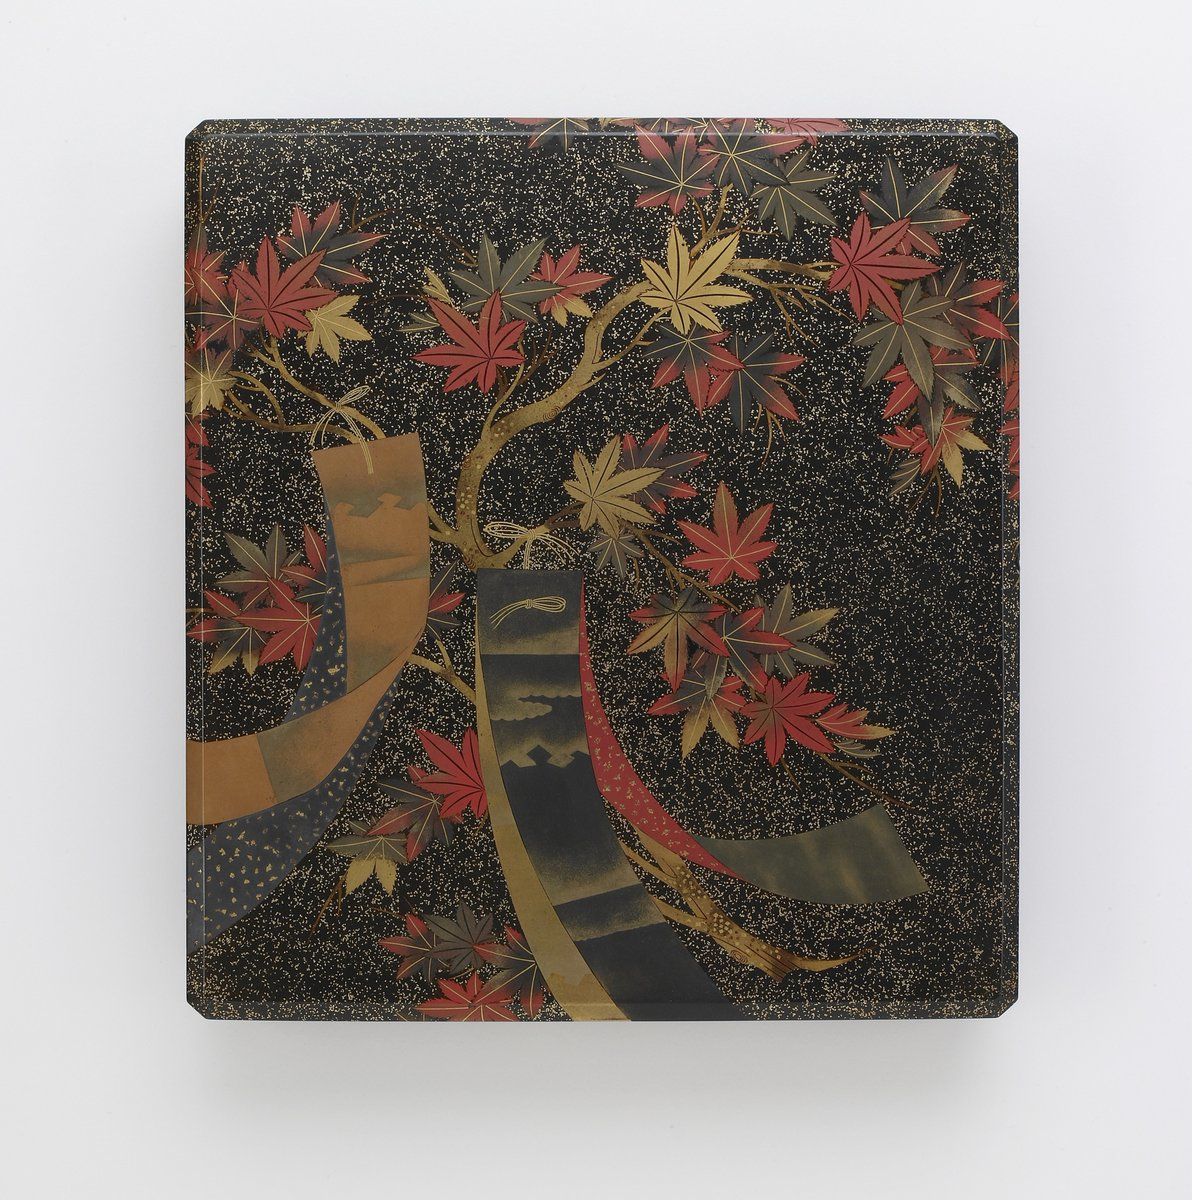 The maple symbolizes strength, power, change, and protection.  Be inspired by the maple in practicing #SelfCare.🍁 #Meditation & #Mindfulness, 12:15 pm EDT: https://t.co/OHkyPDEM6y  Box for writing instruments (suzuribako) in our #JapaneseArt collection: https://t.co/3djtpQHpic https://t.co/cVARG10Rg3